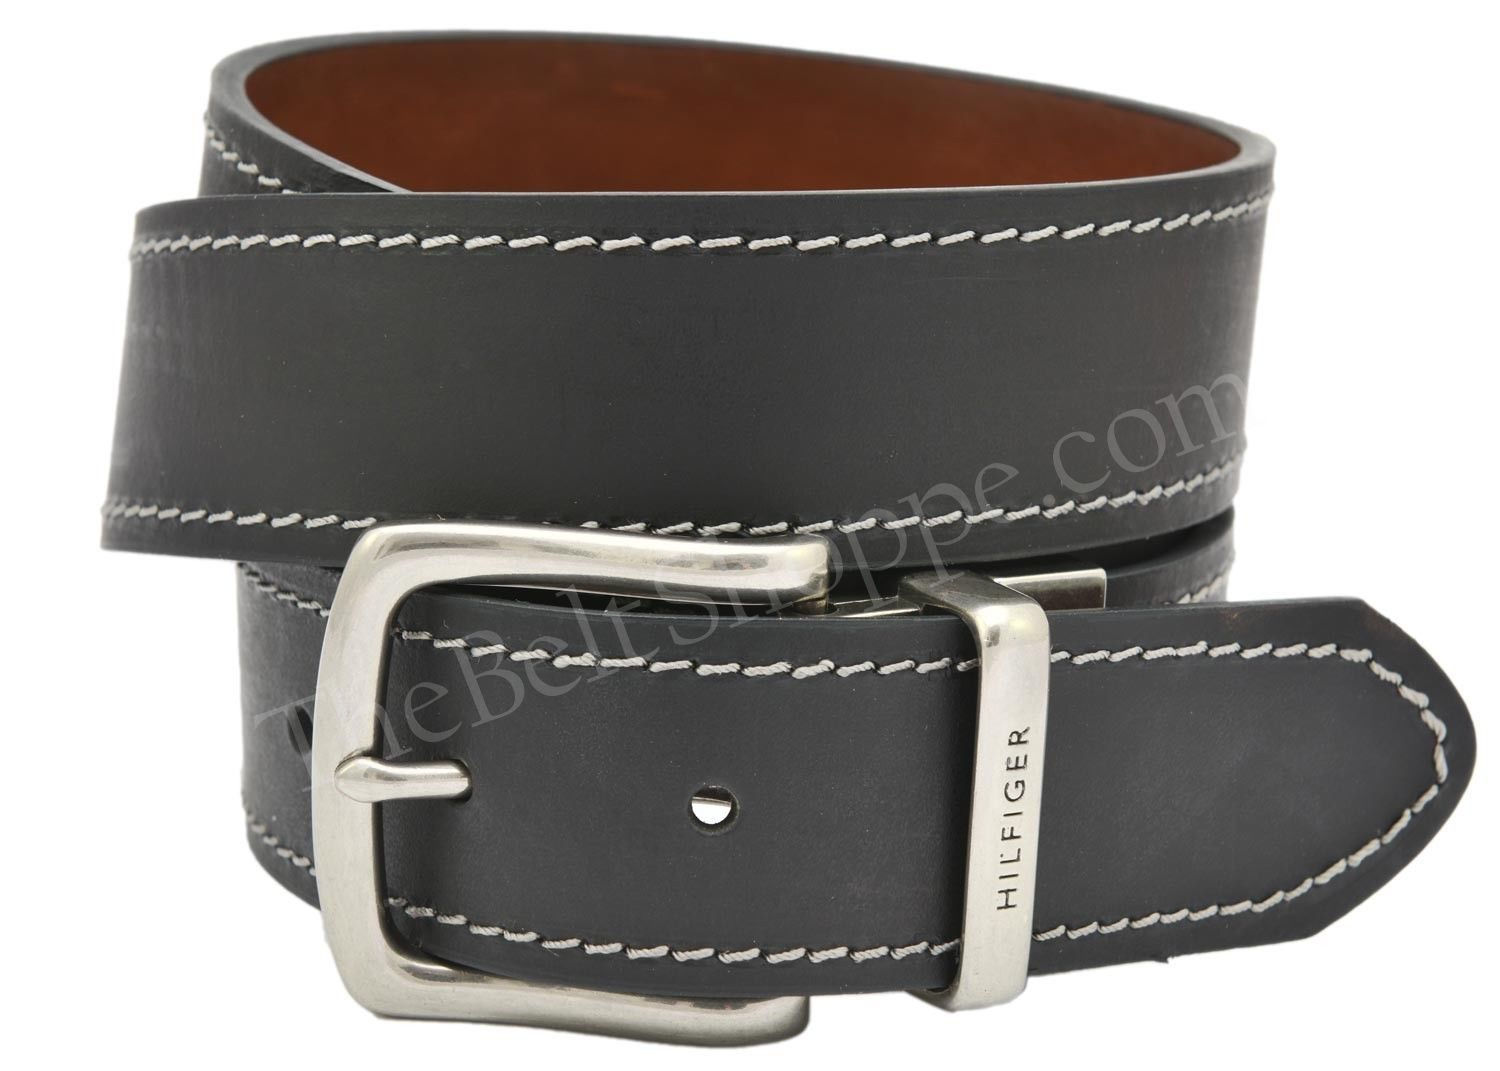 hilfiger saddle leather reversible jean belt black